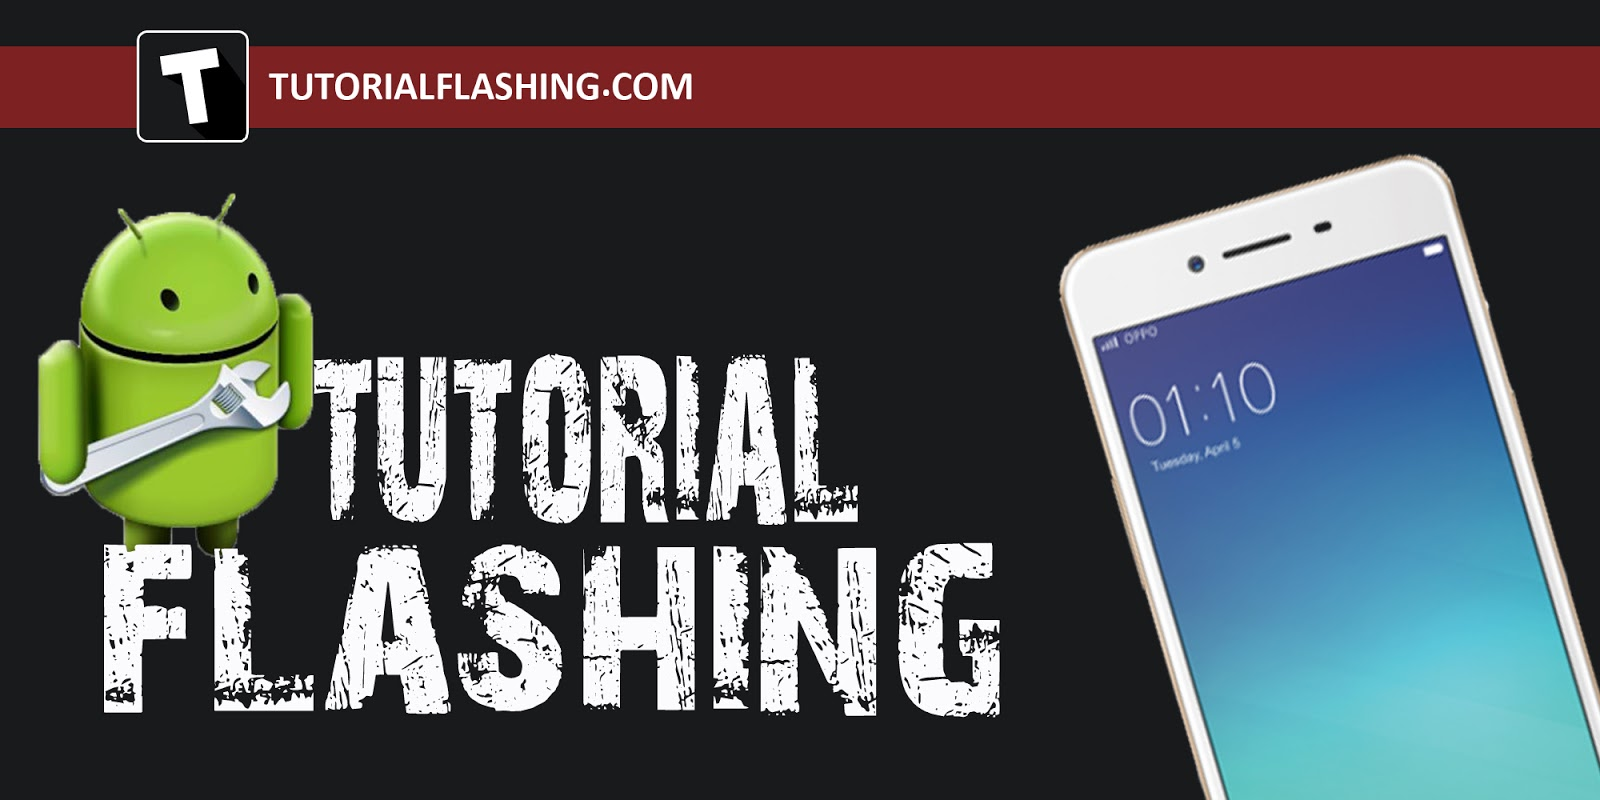 Cara Flashing Hp Oppo A37f Full Bahan Tutorial Flashing Kumpulan Tutorial Flash Hp Lengkap